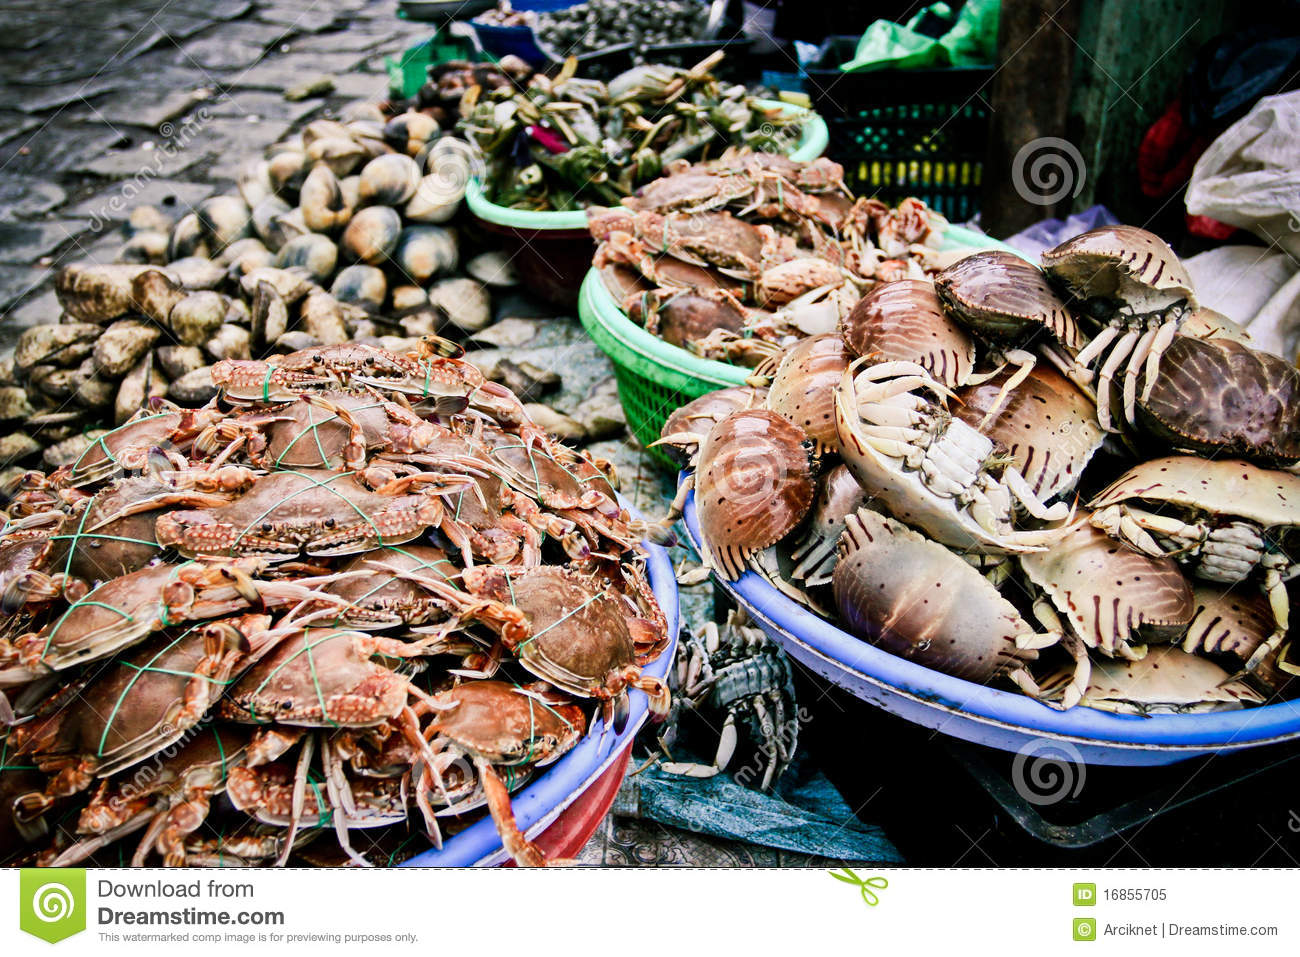 Seafood market royalty free stock photo image 16855705 for Seafood fish market